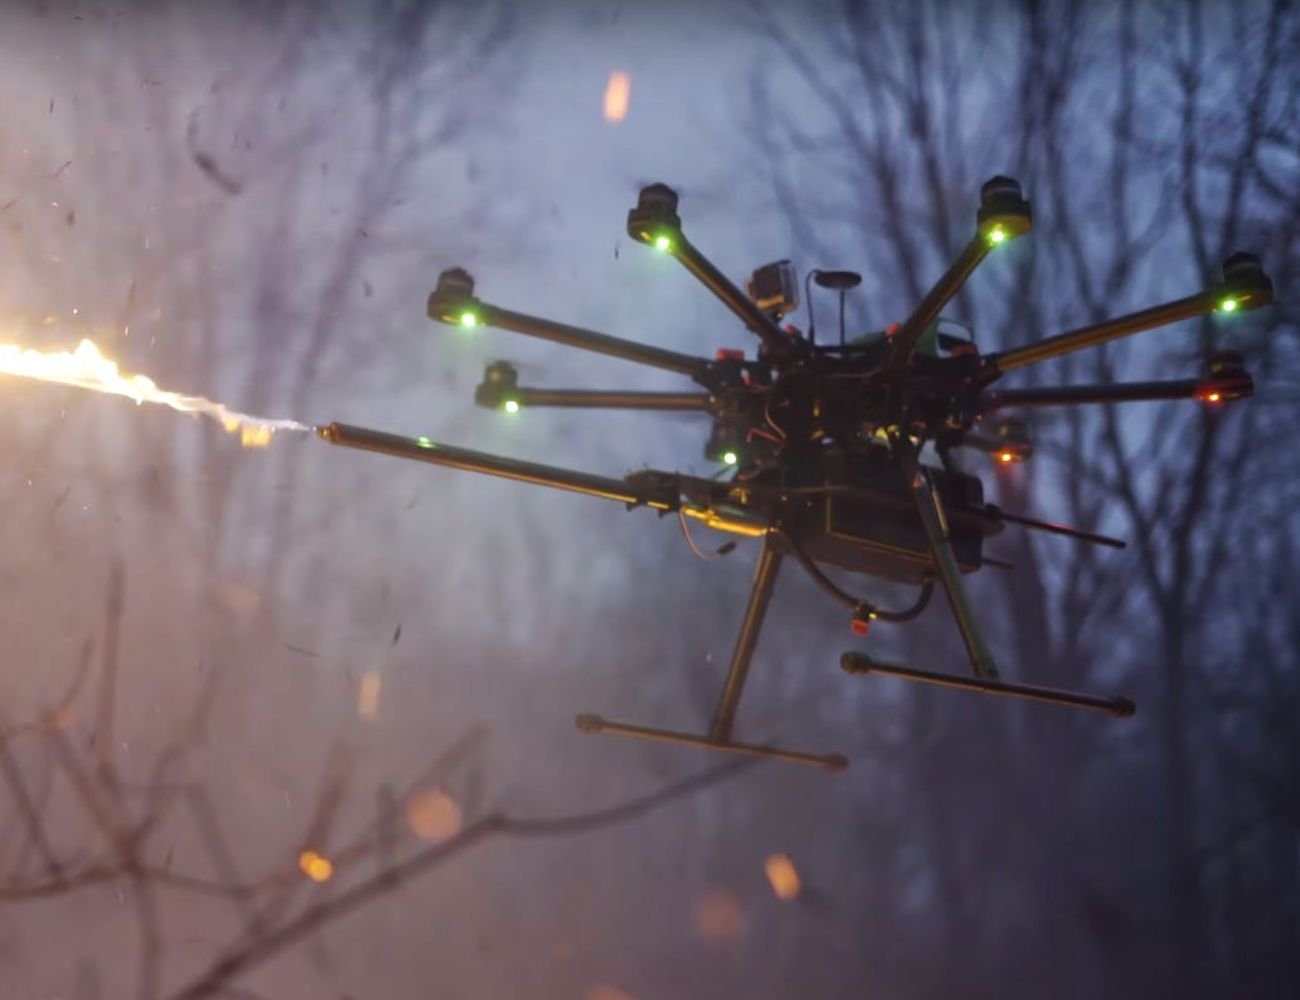 Throwflame TF-19 WASP Drone Flamethrower Attachment remotely ignites your target